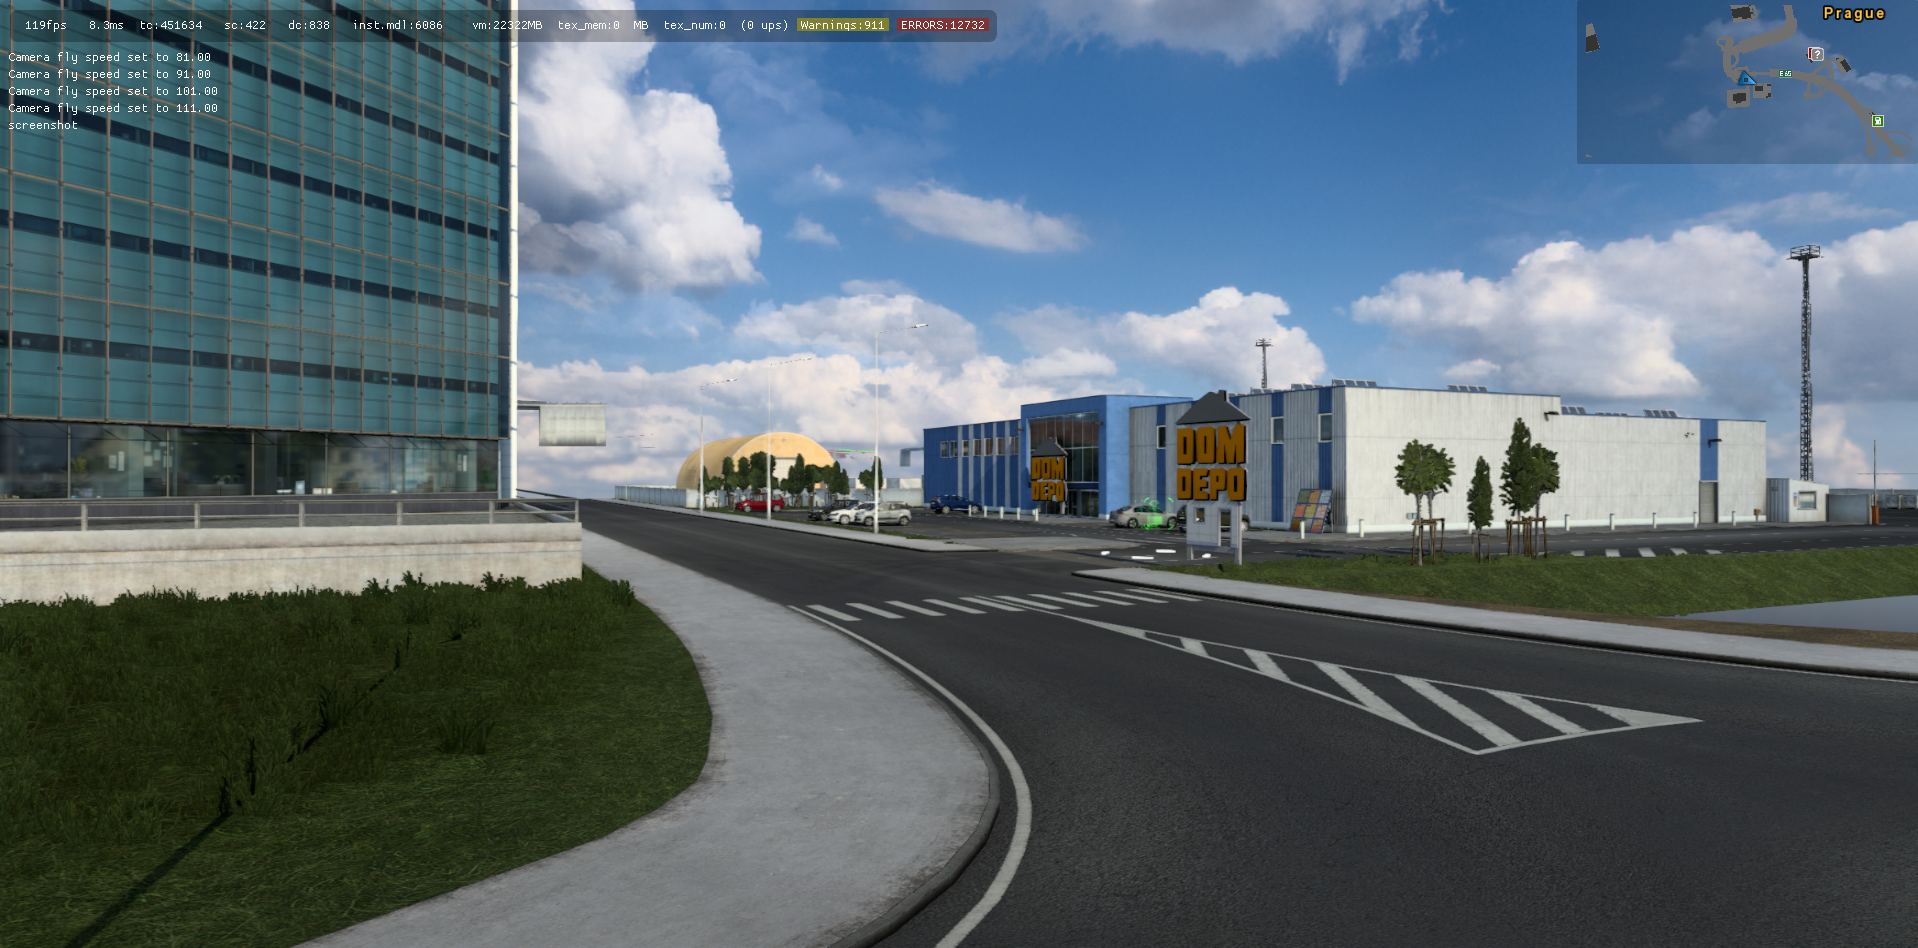 ets2_20210508_145831_00.png